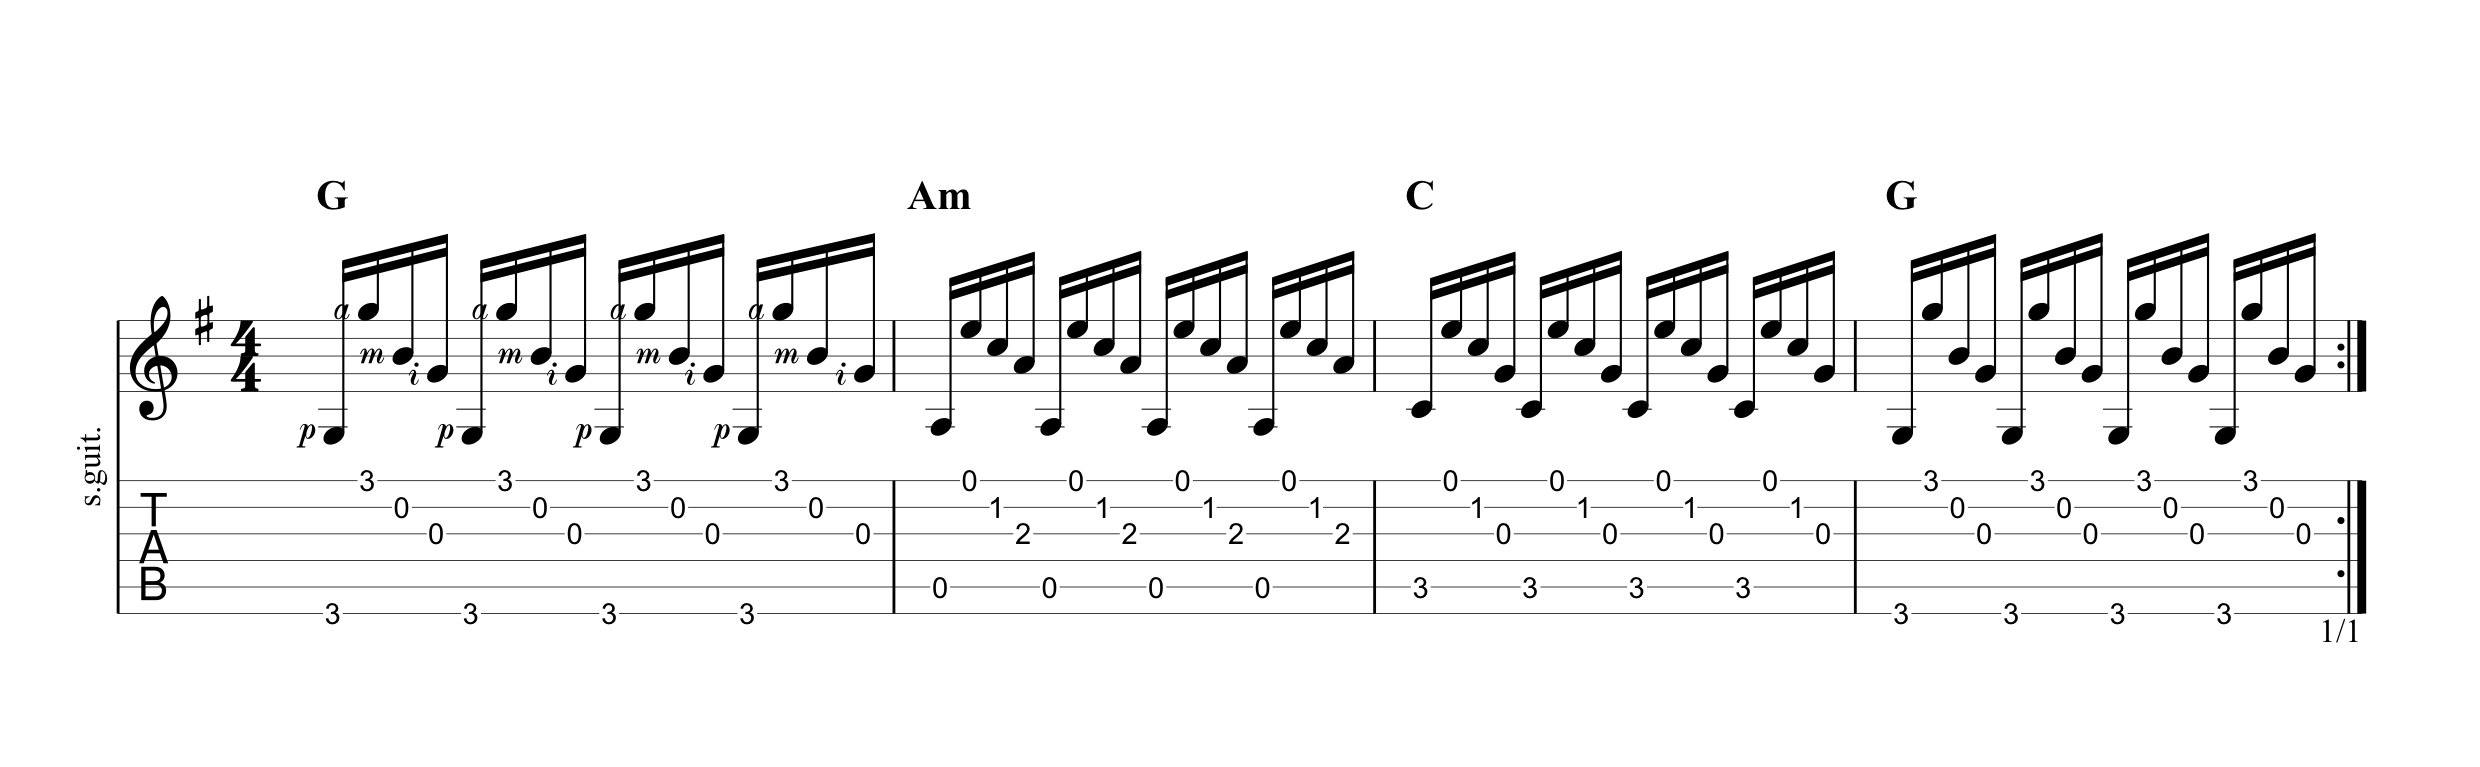 Fingerpicking Pattern 5